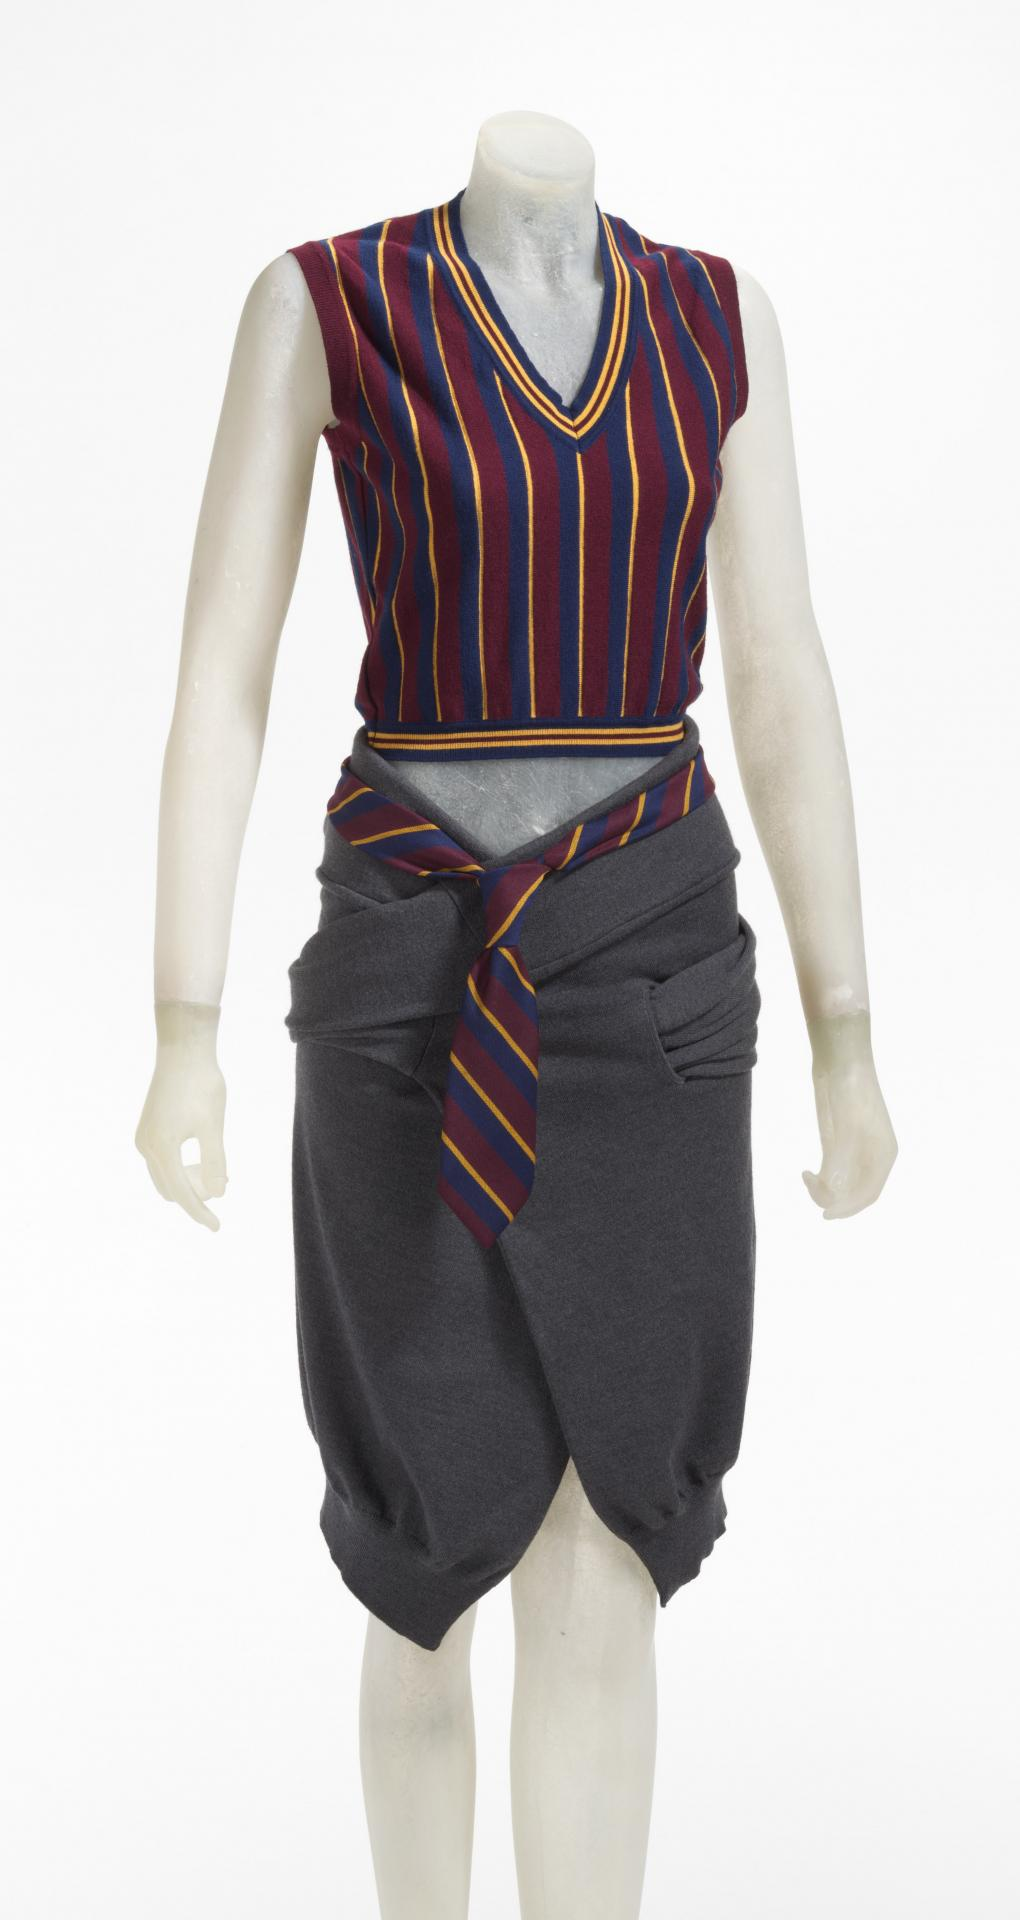 Vest, skirt and tie